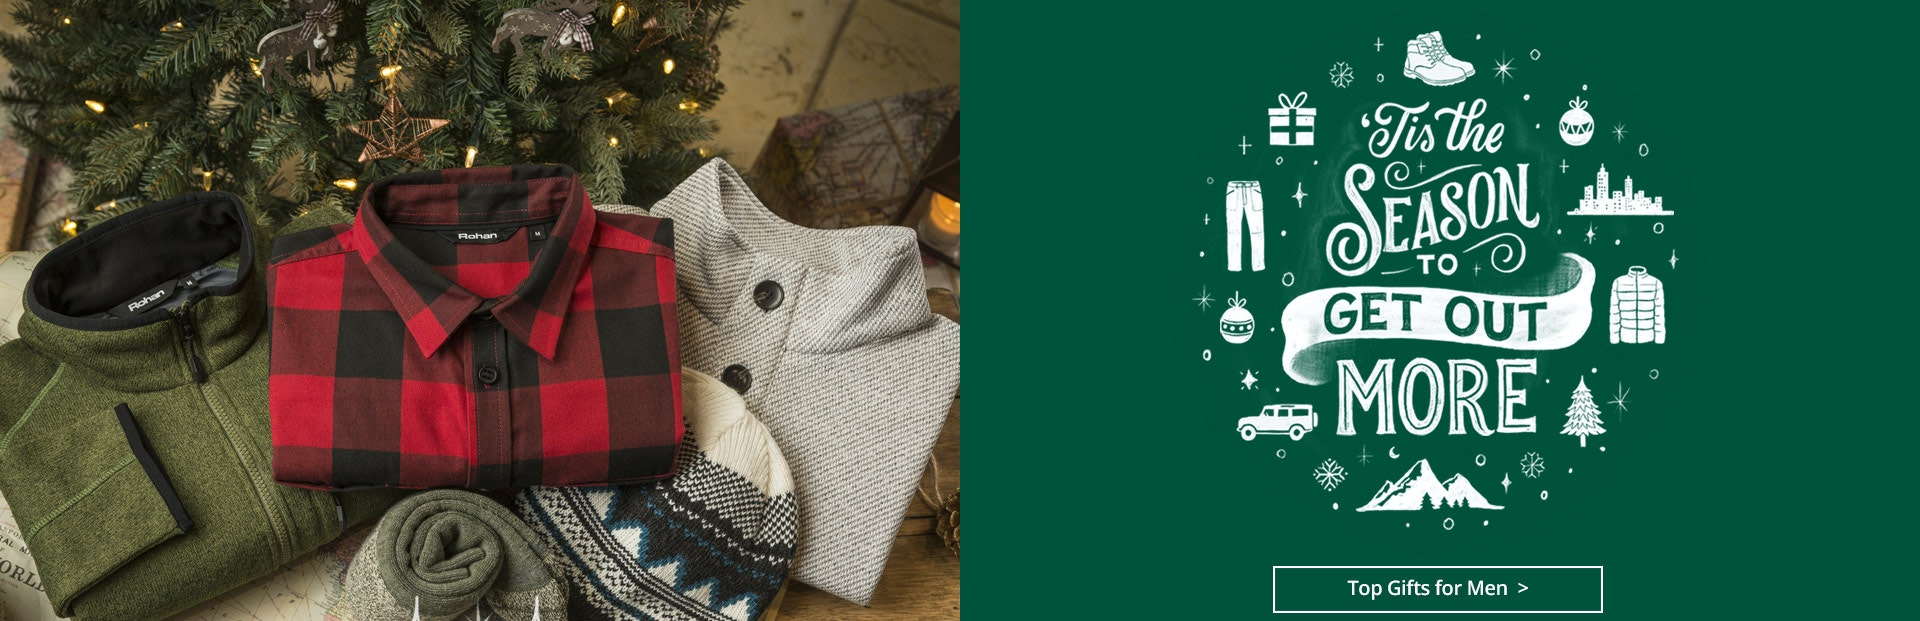 Shop Christmas Top Gifts for Men